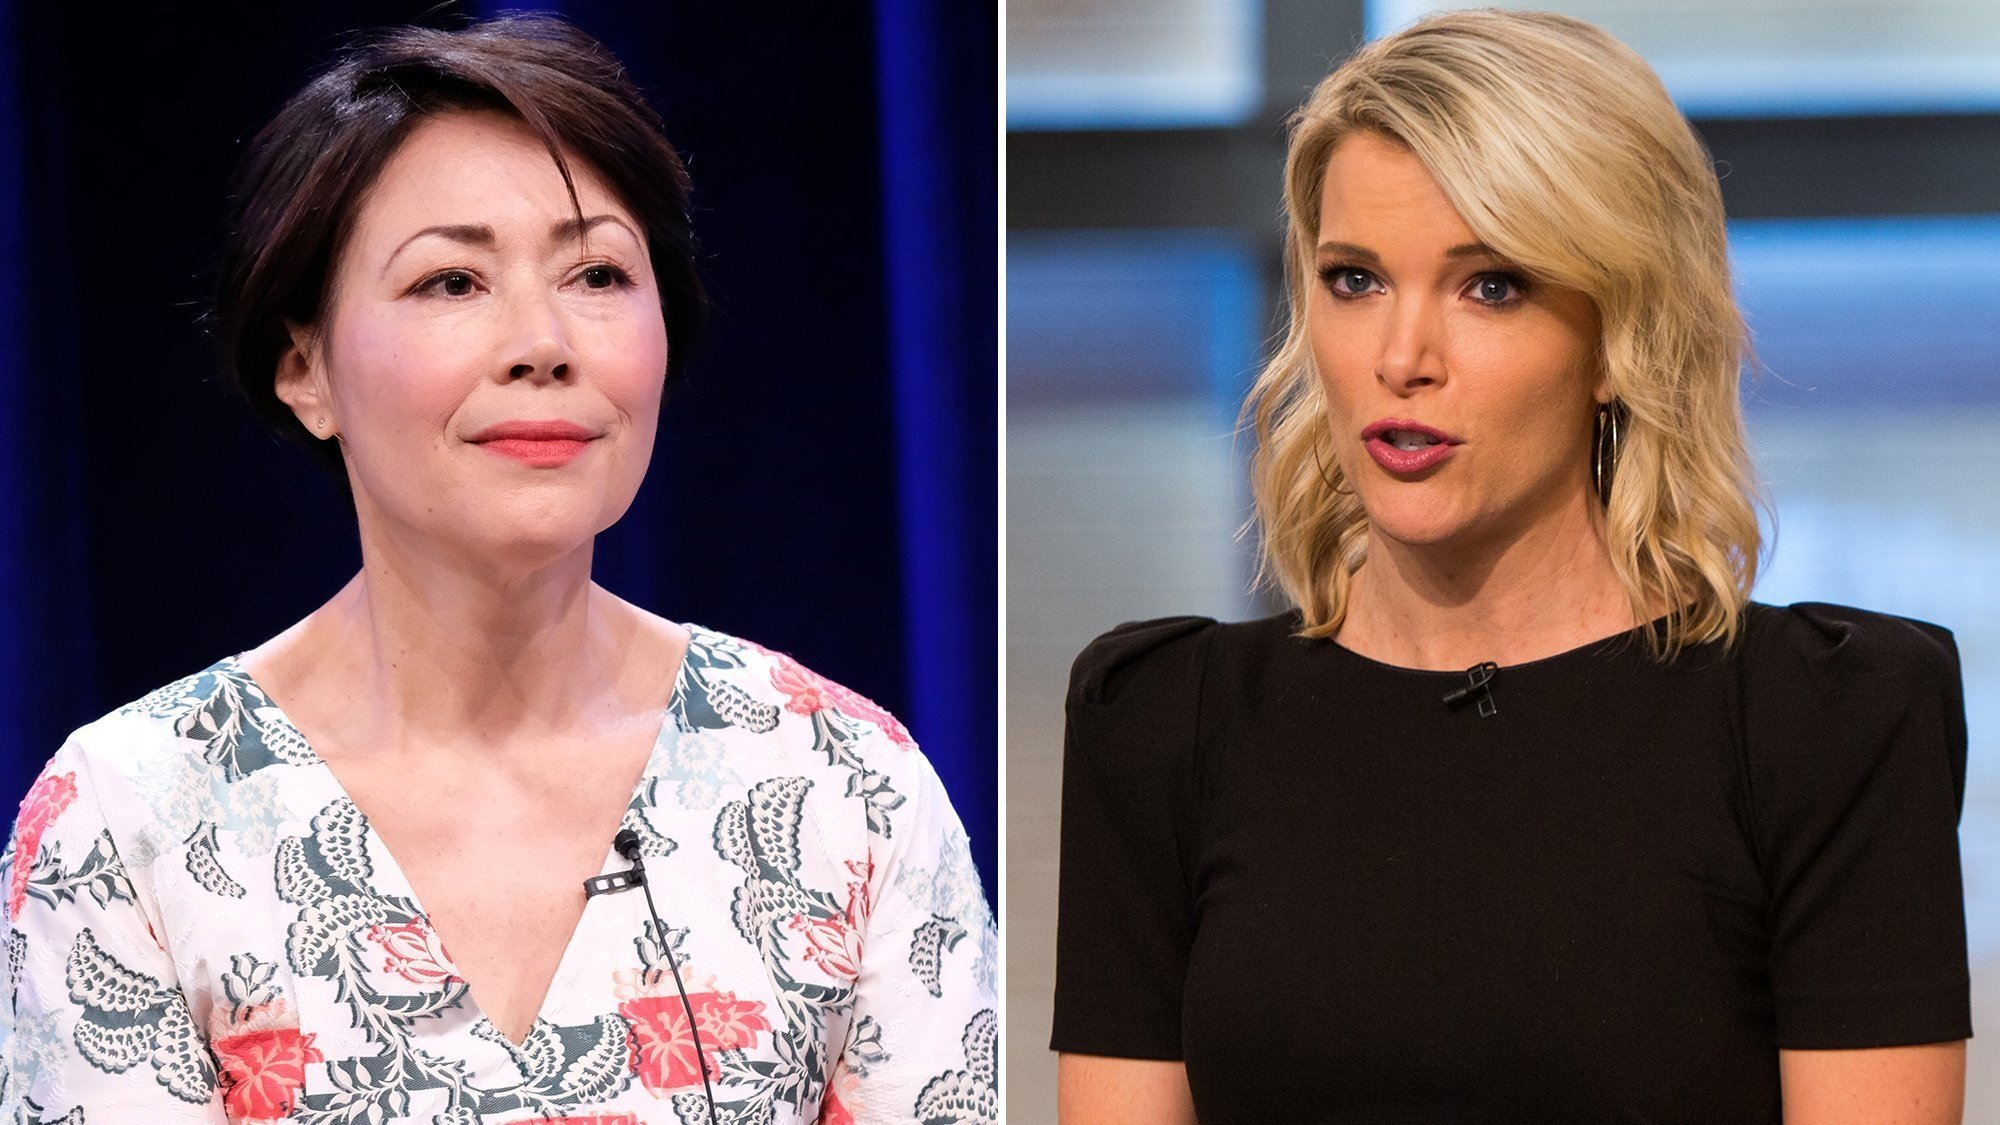 Ann Curry Says Megyn's Kelly's Criticism of Jane Fonda Is 'Not Journalism'